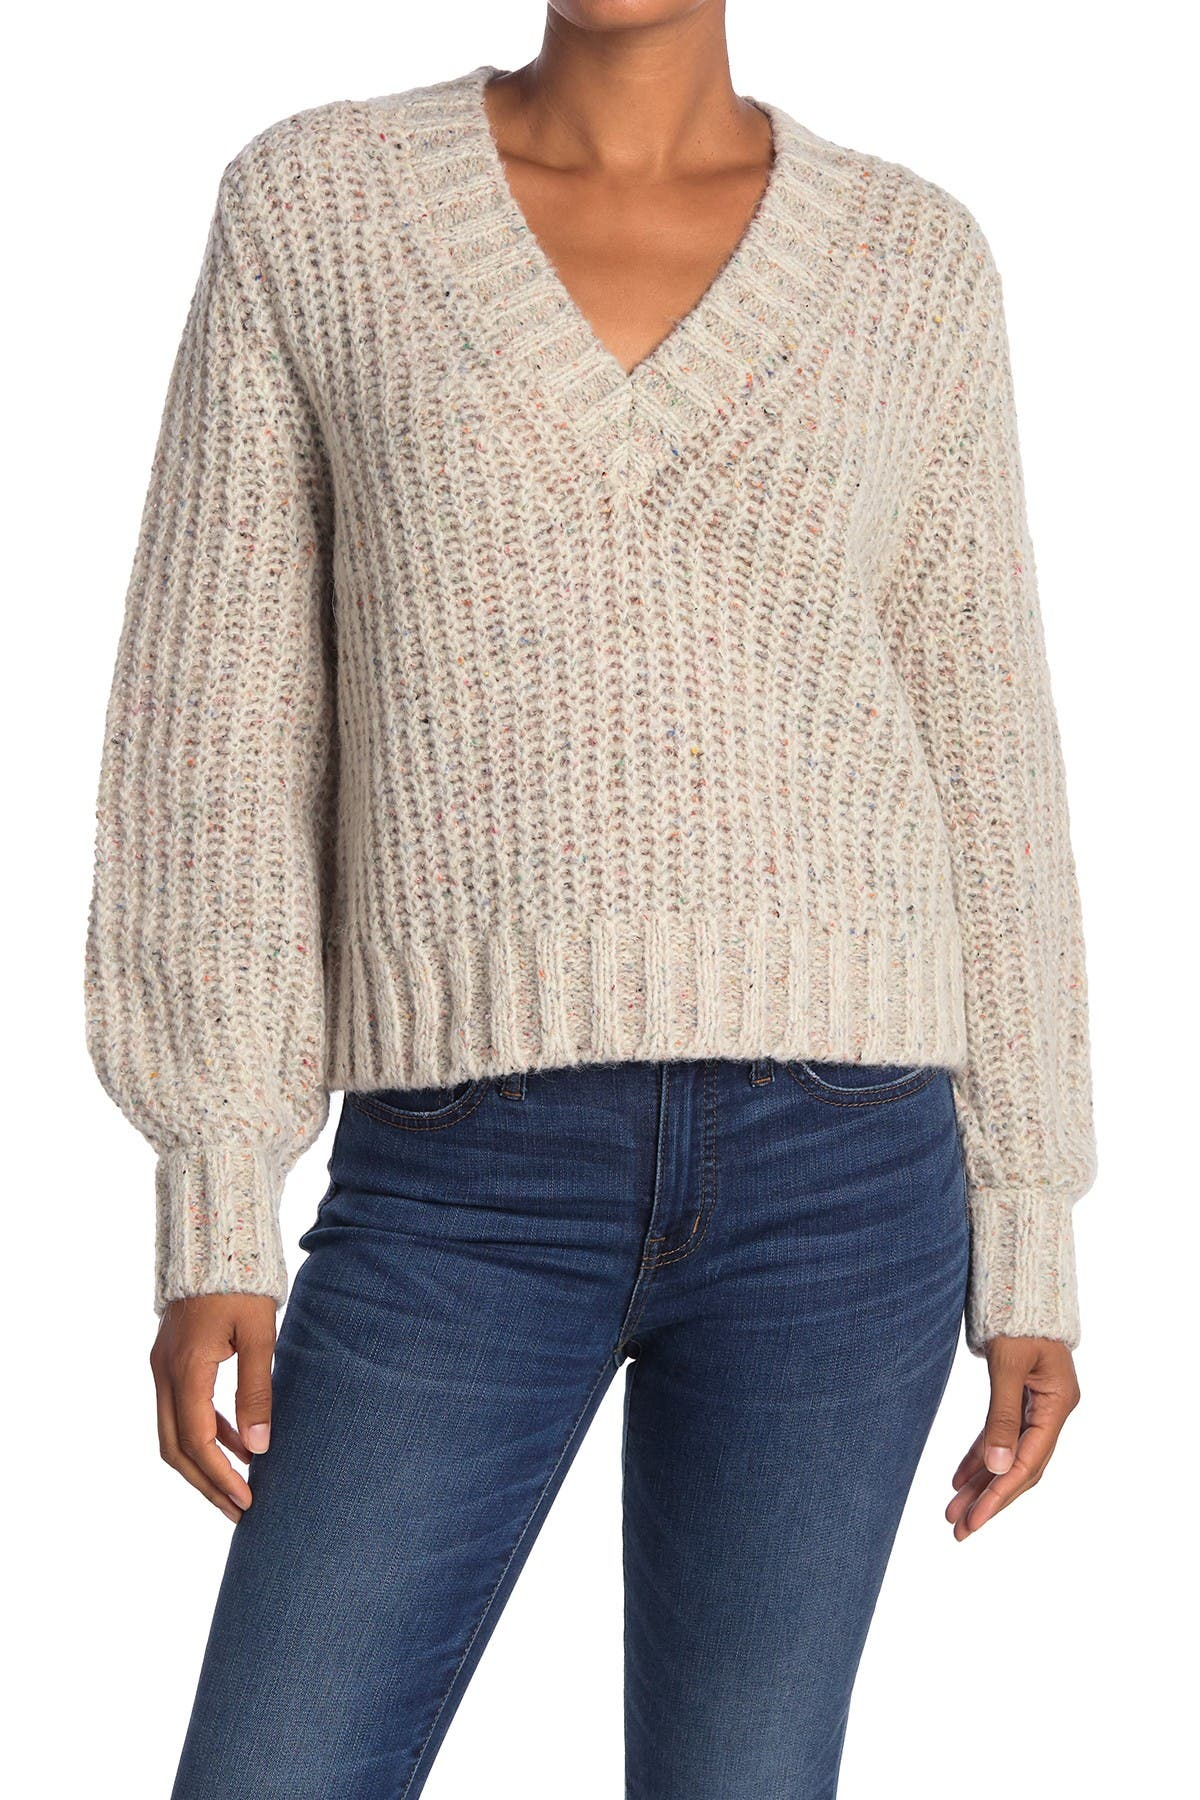 Image of 360 Cashmere Nimm Chunky V-Neck Pullover